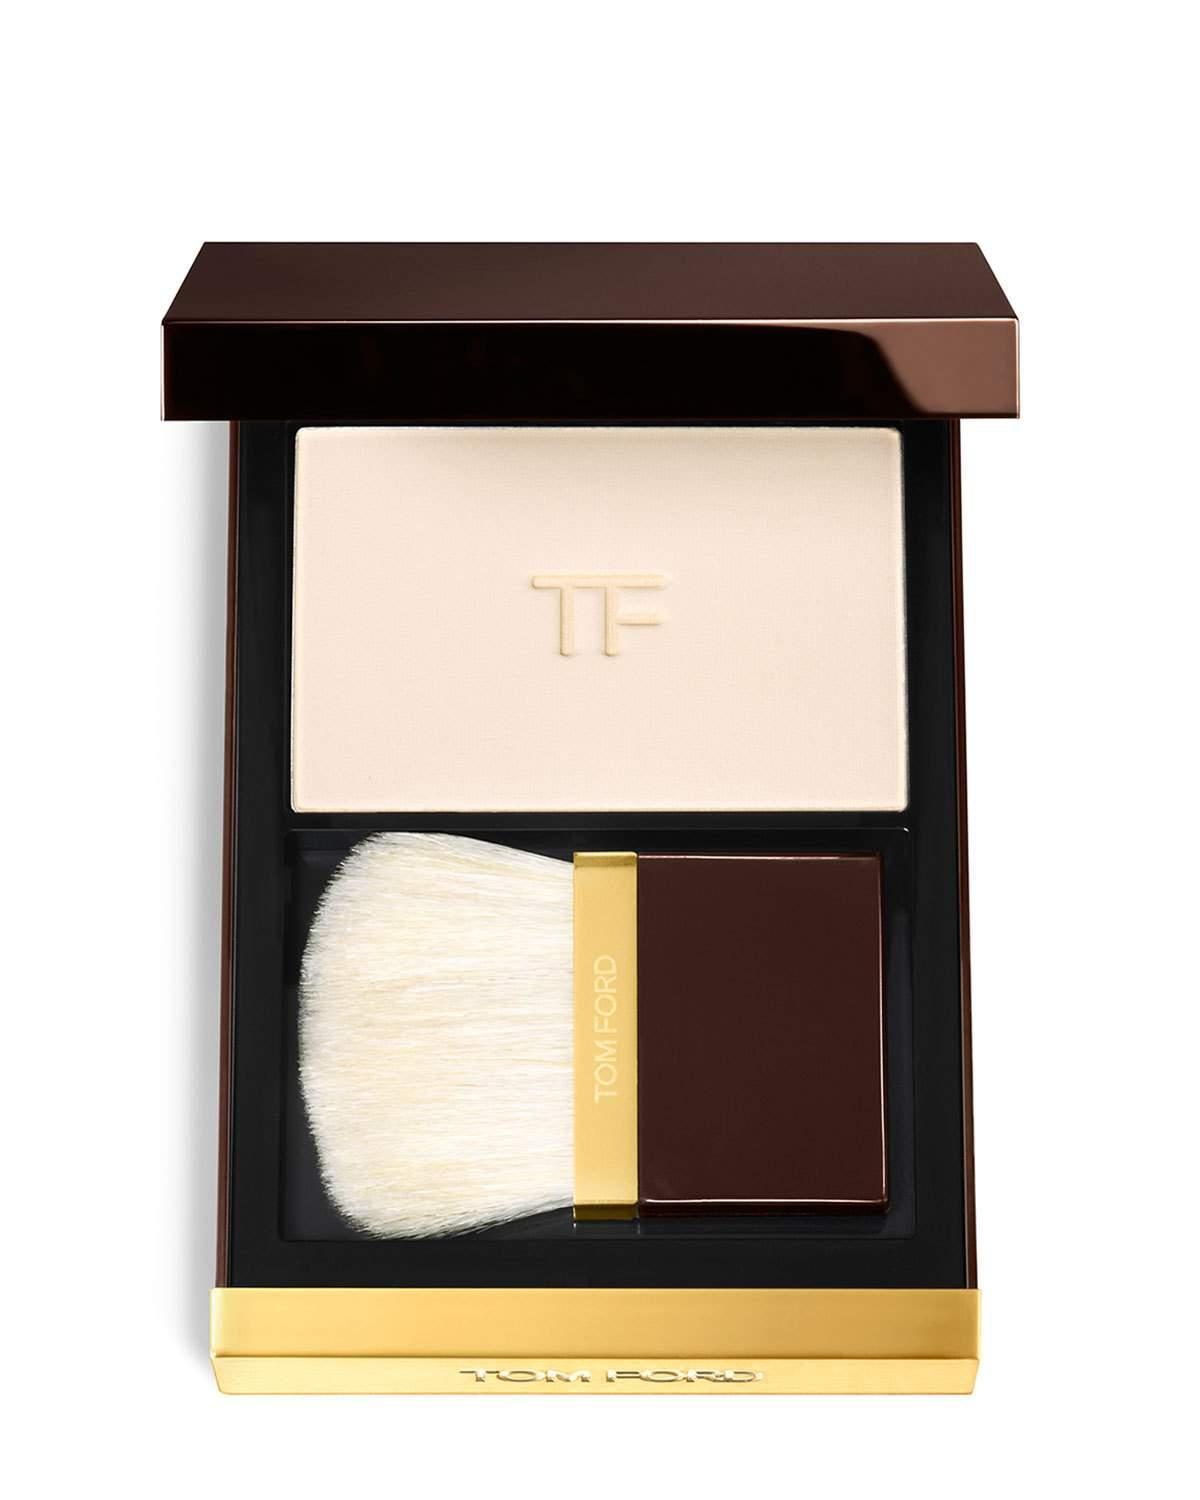 fa355c4e19204 Tom Ford Transulcent Finishing Powder 04 Sable Voile .31 Oz  9 G ...